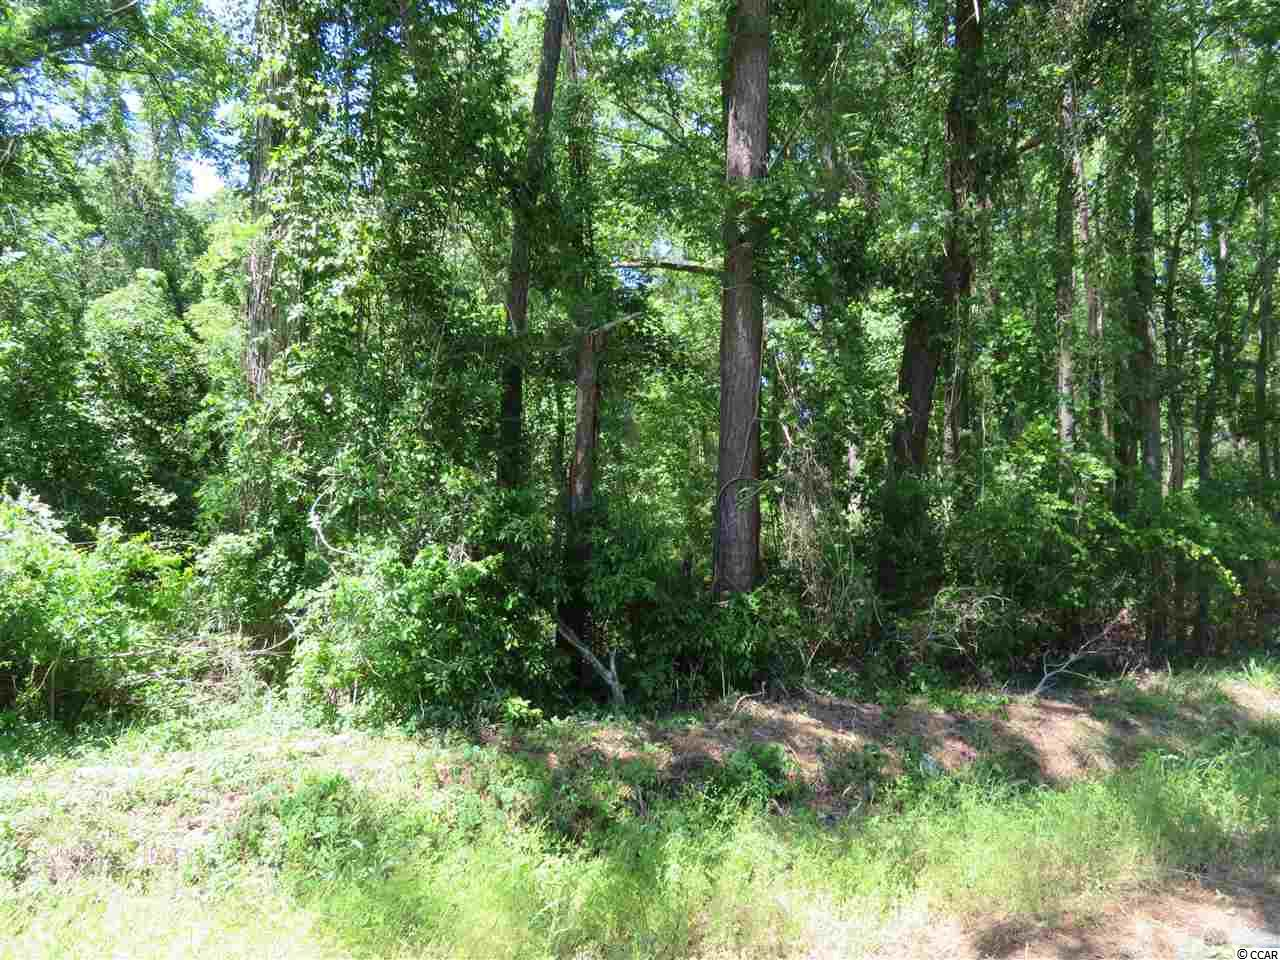 If you have been looking for land you've found it!  This 0.92 acre lot is ready for you to buy and build.  Approximately 15 minutes away from Historic downtown Conway, SC and less than 5 minutes away from Bucksport Marina. This property is prime and ready to build your dream home!